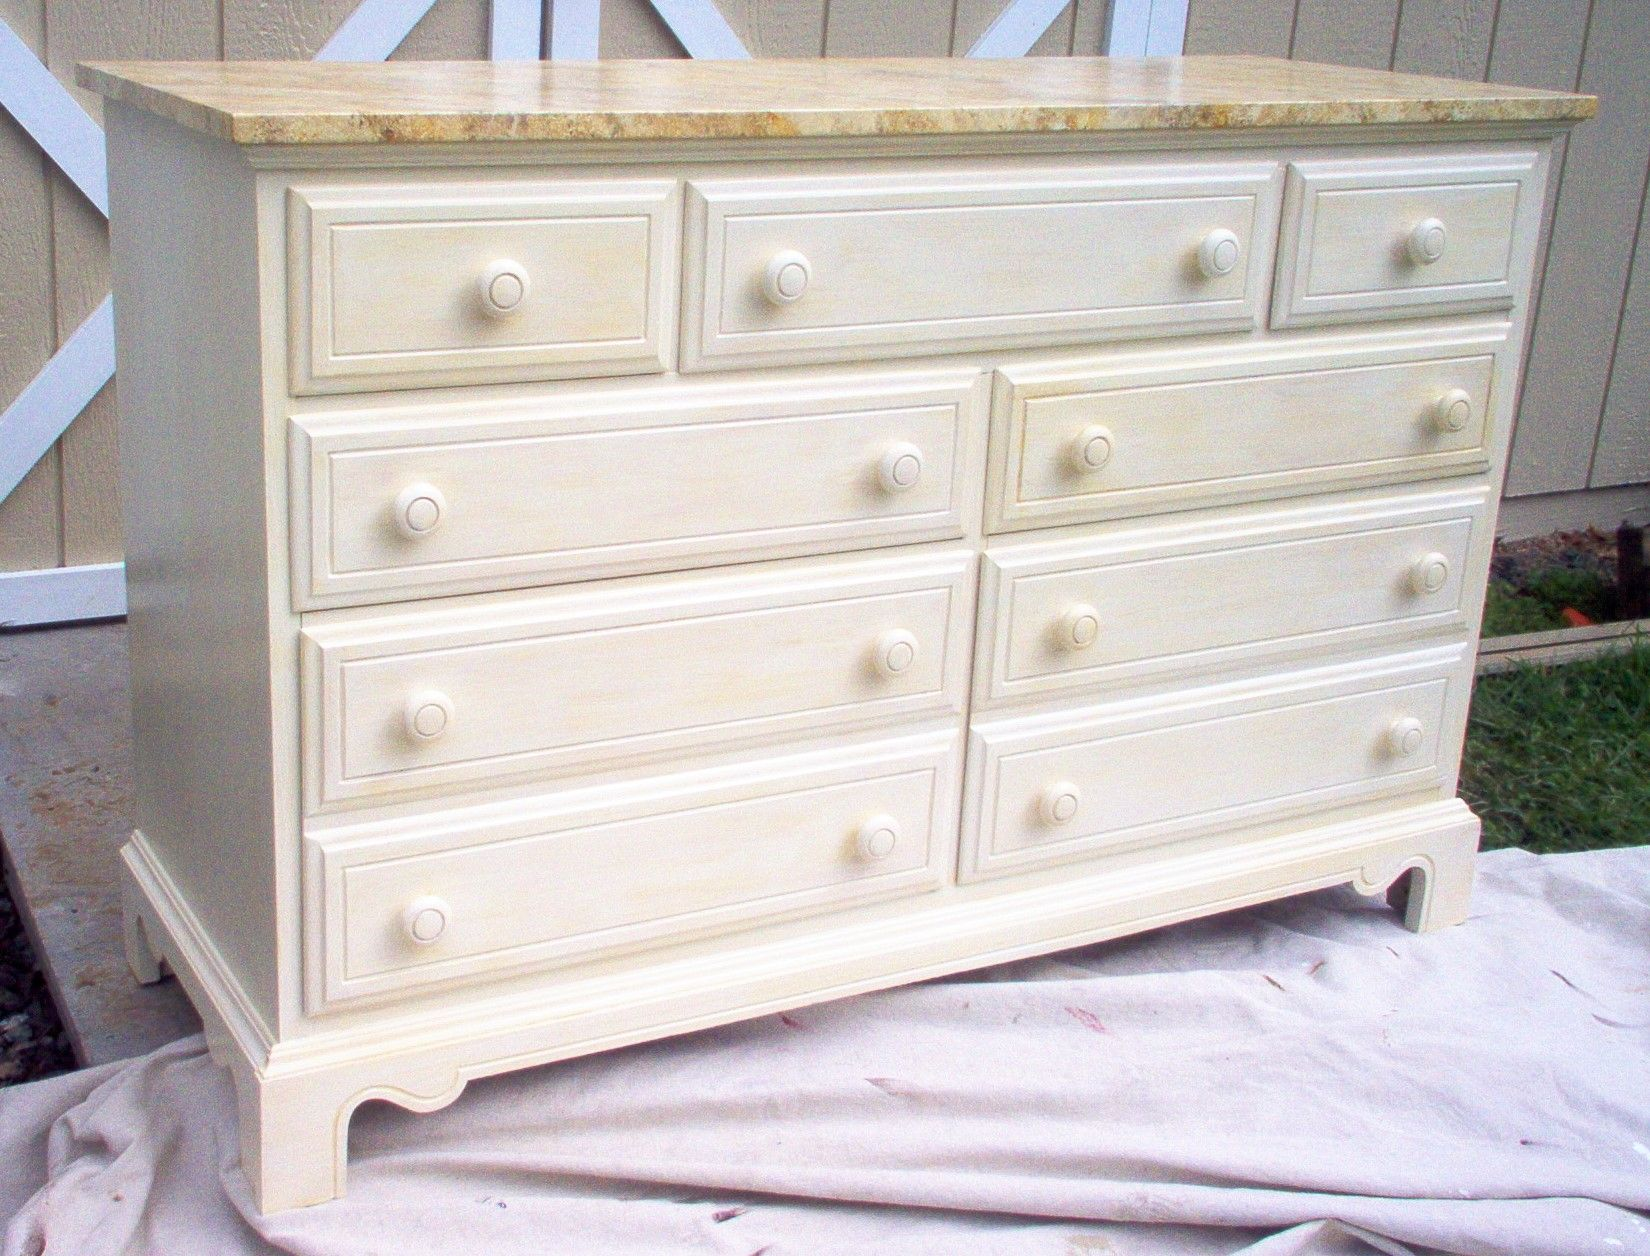 marble top bedroom furniture%0A Dresser painted white with faux marble top